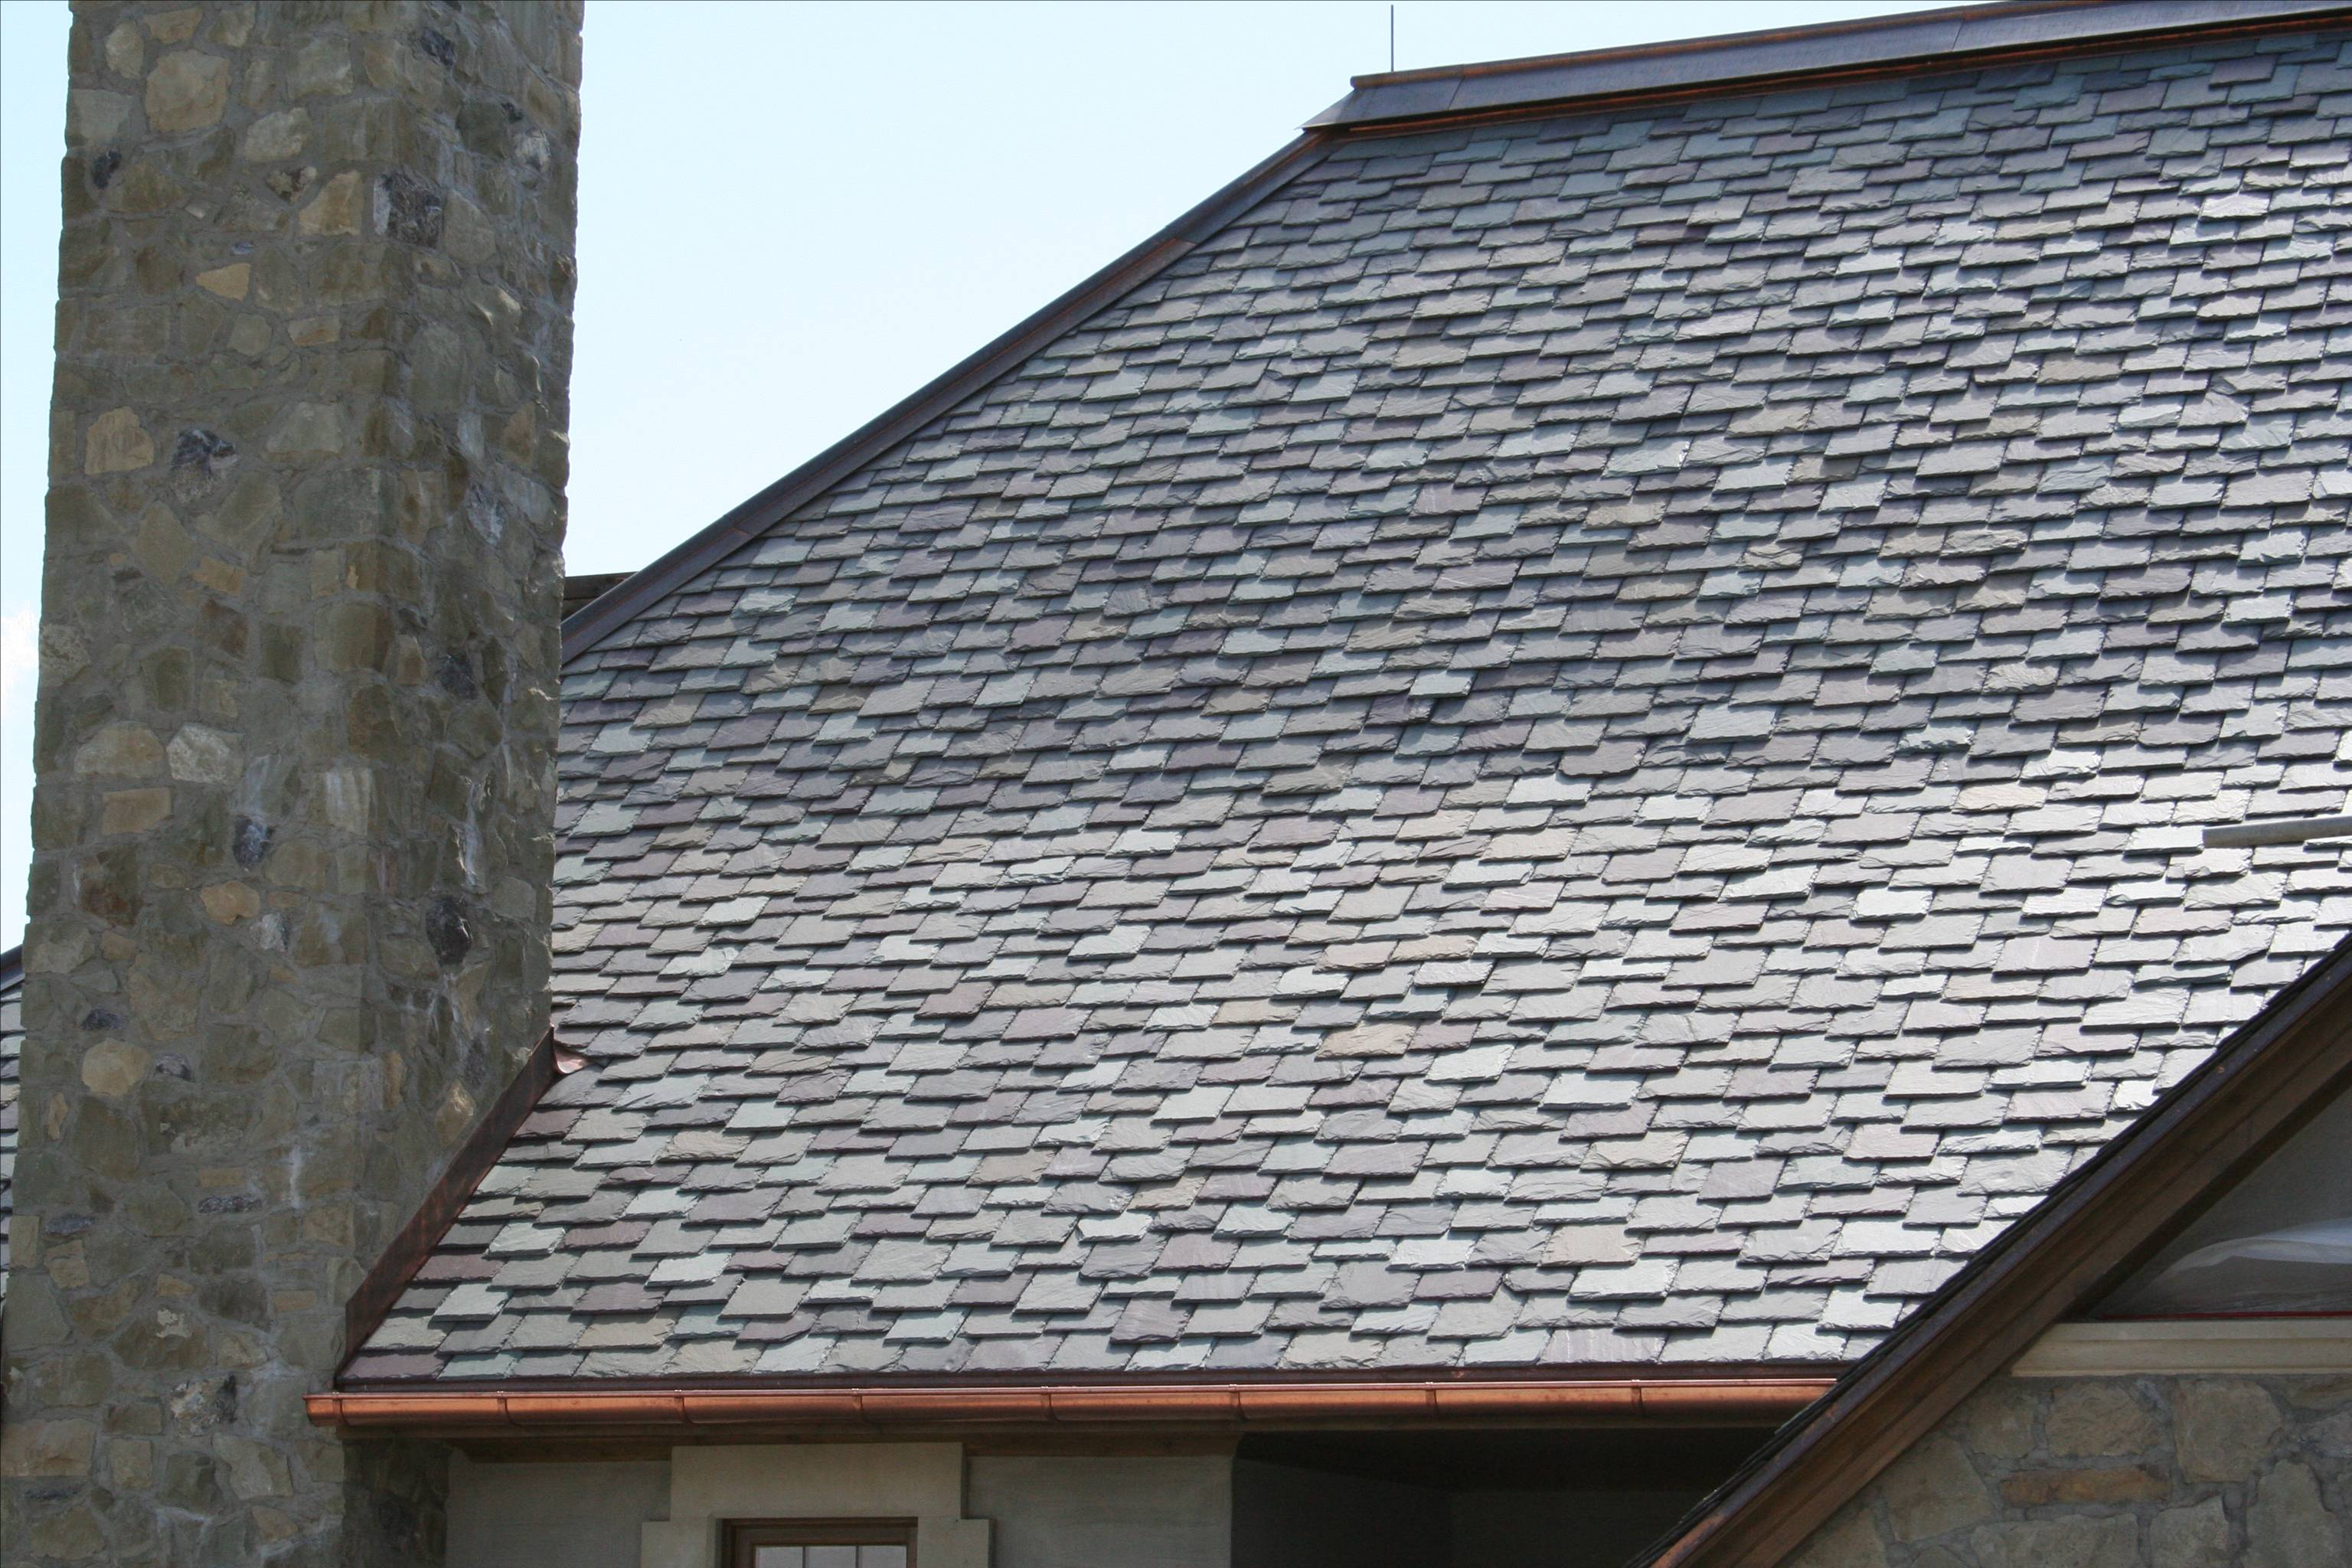 Slate Roofing – Lessons Learned